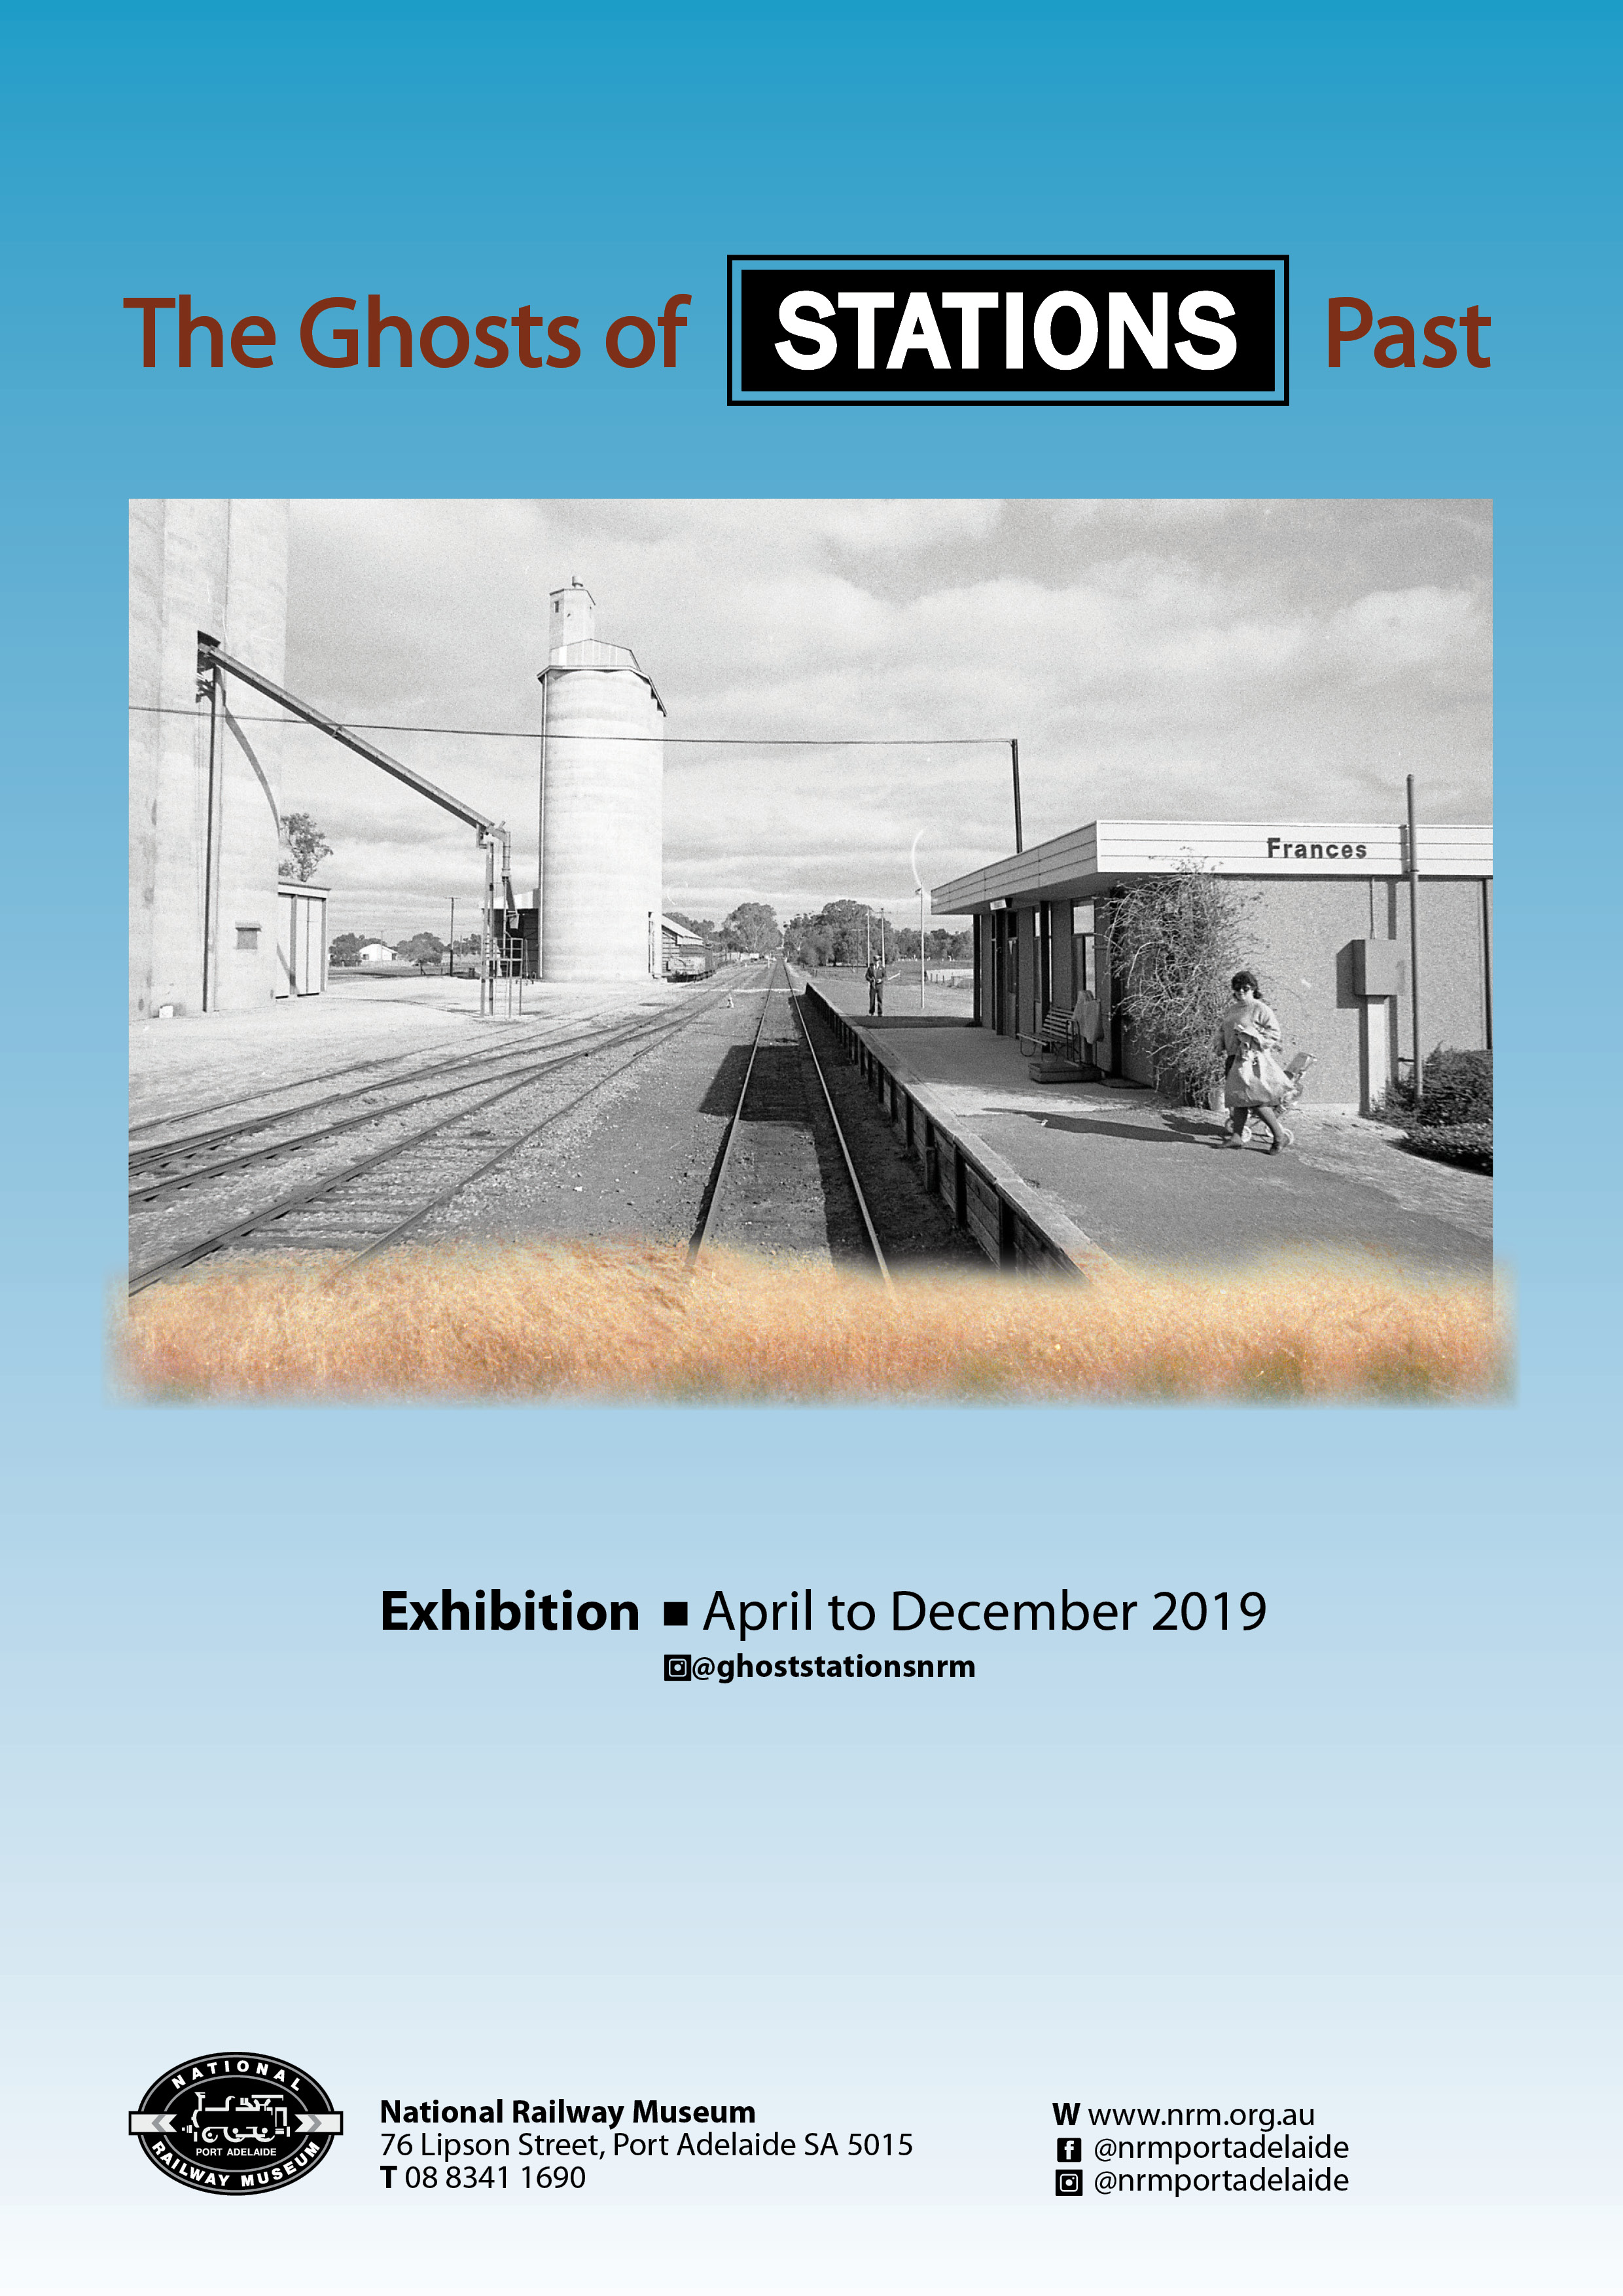 GhostStations 2